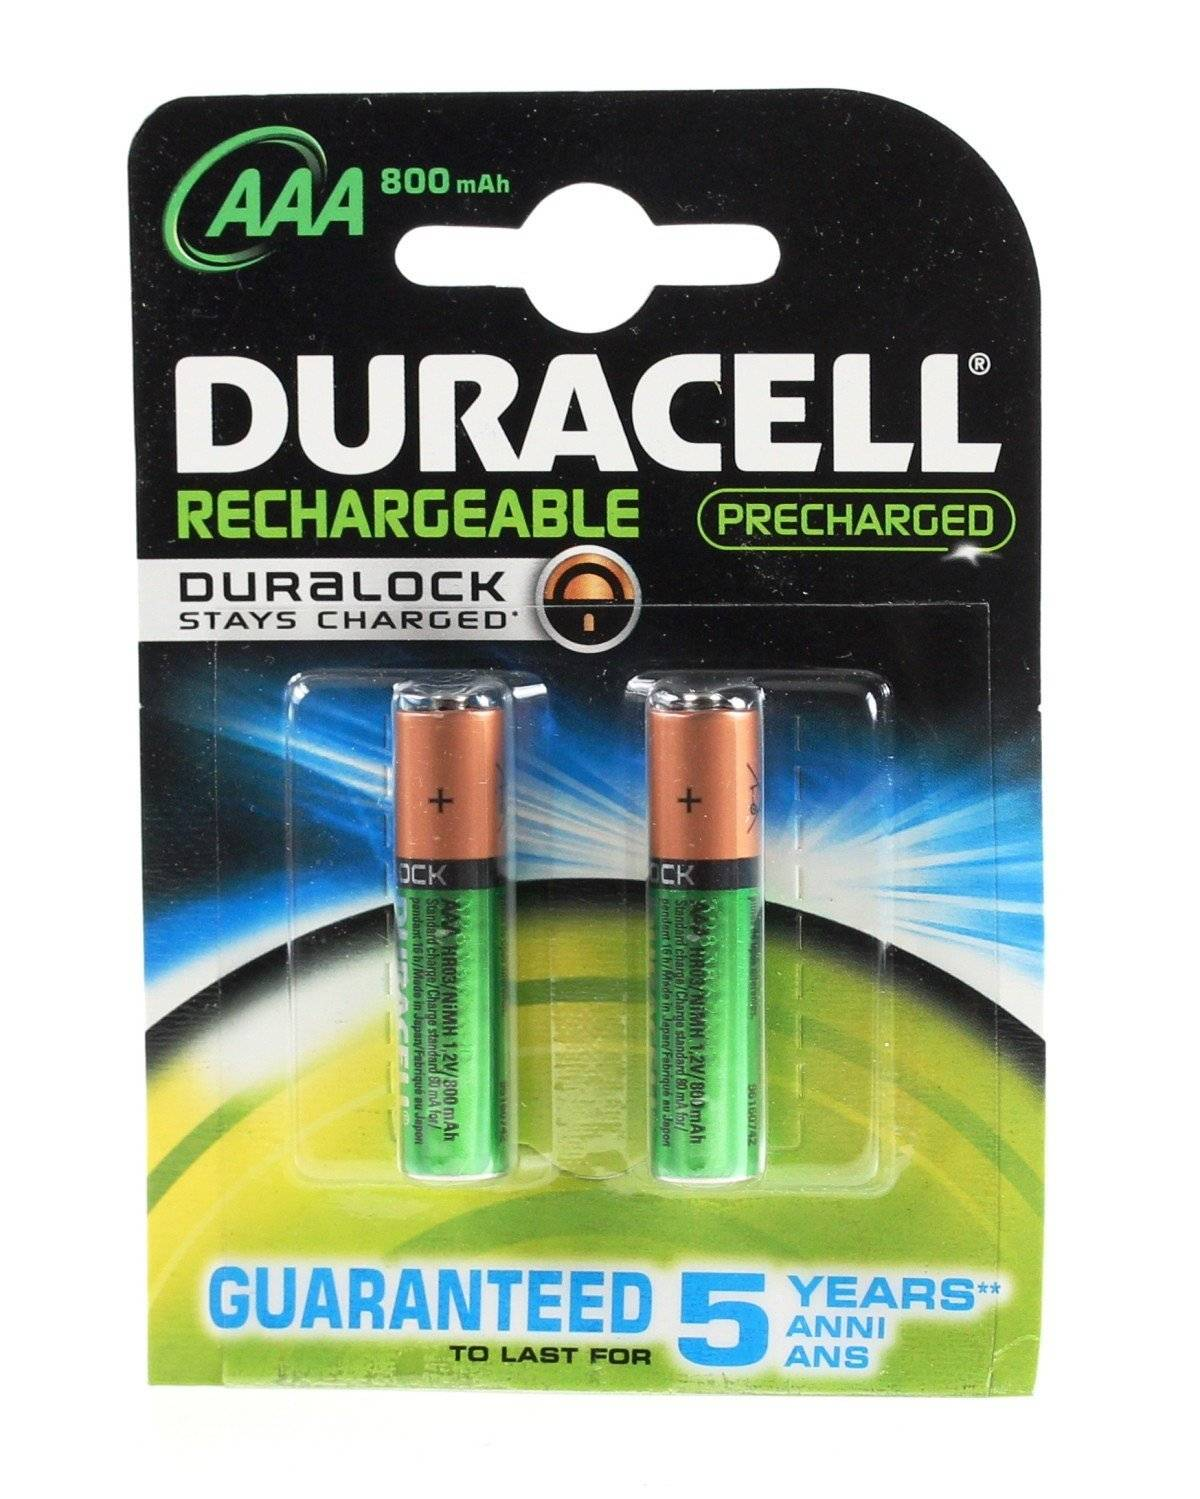 Duracell Rechargeable 800mah Hr03 Aaa (Lr03), 2-Pack